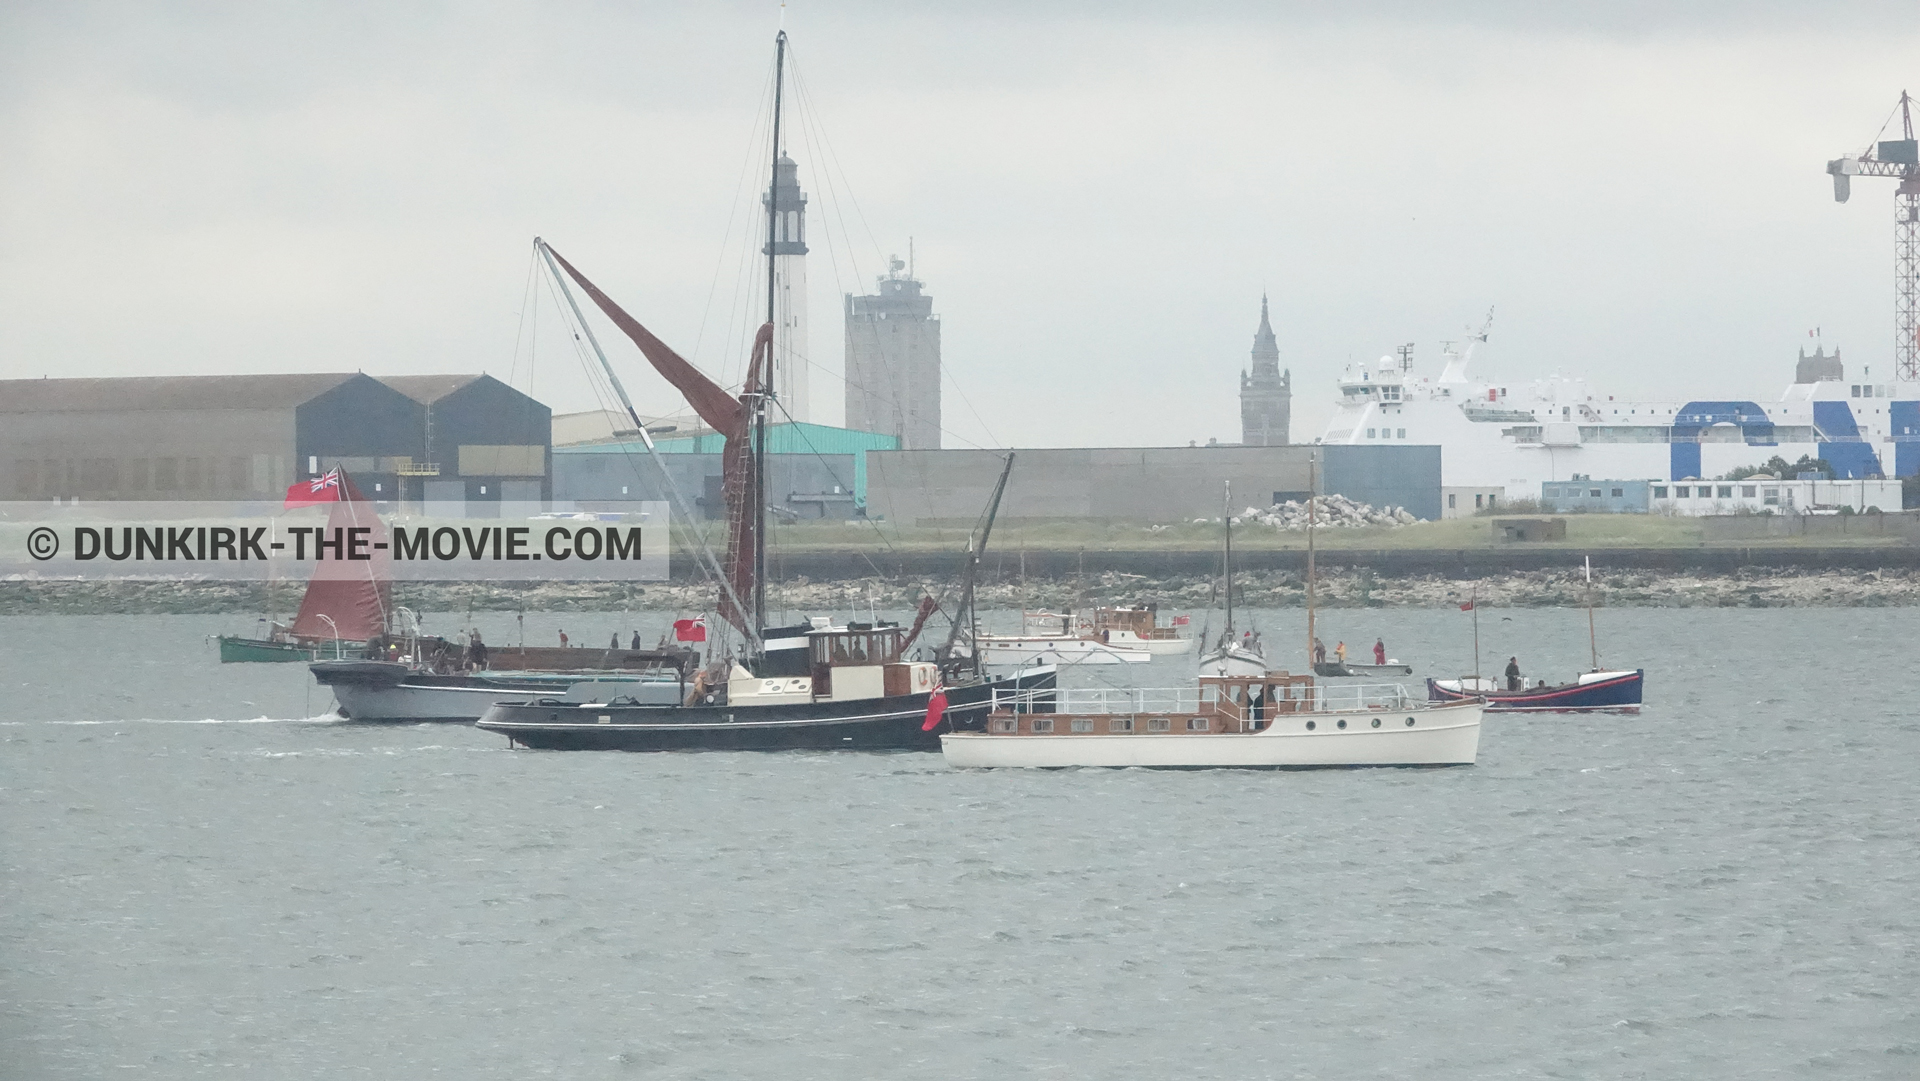 Picture with boat, Henry Finlay lifeboat, Xylonite,  from behind the scene of the Dunkirk movie by Nolan